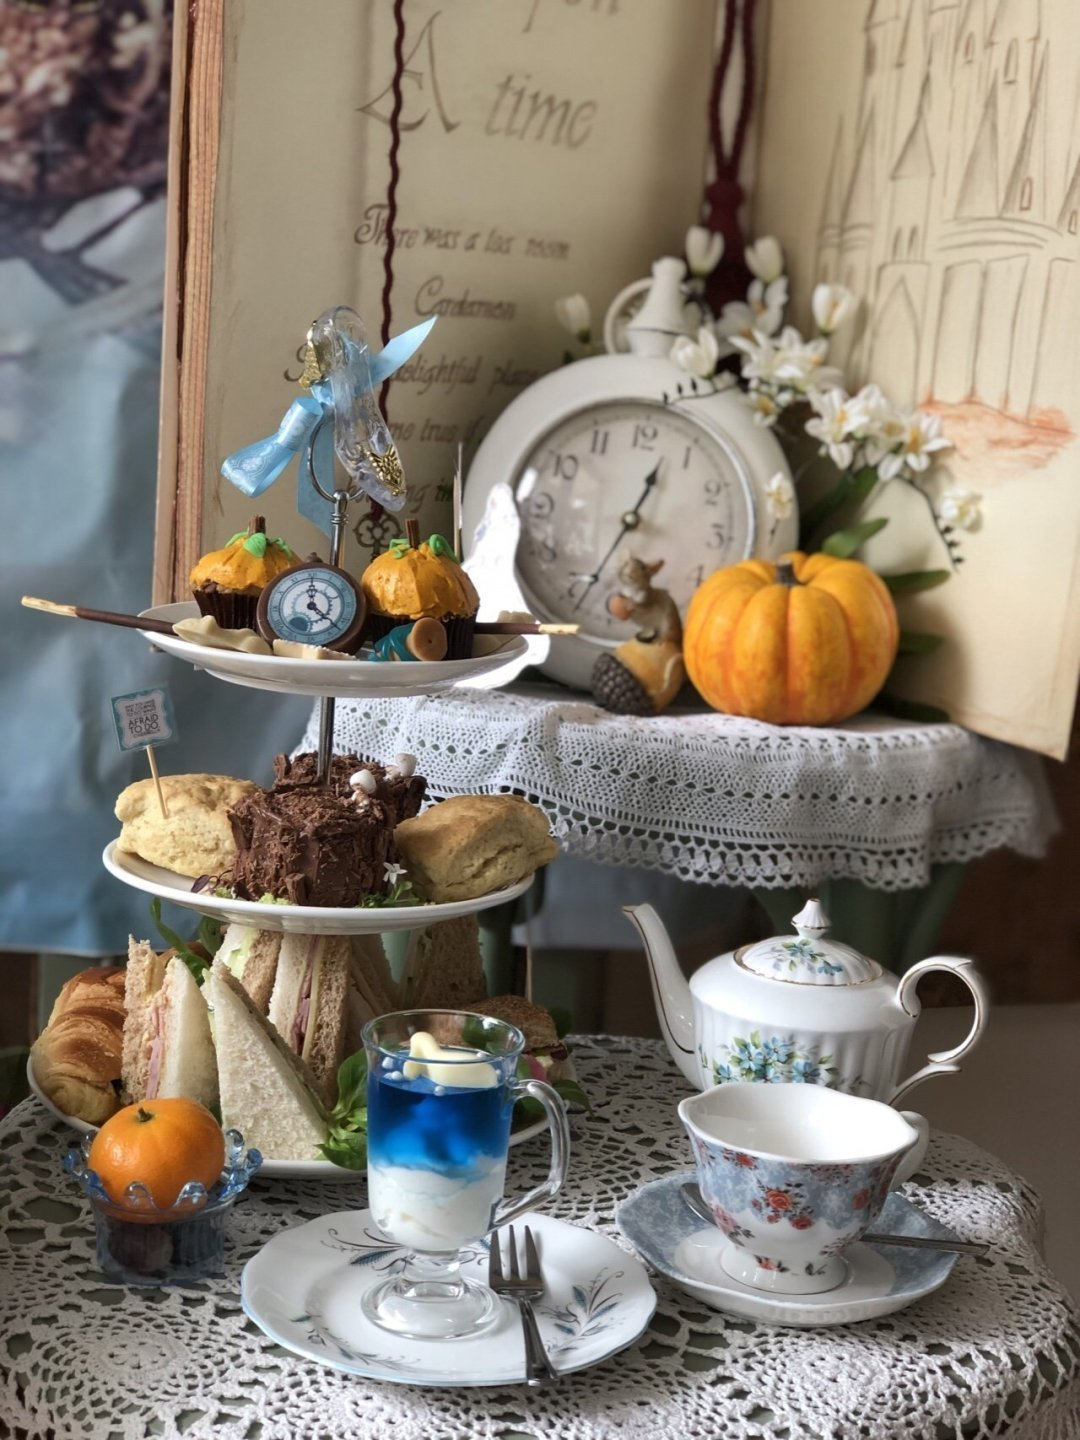 Cinderella themed afternoon tea in Essex